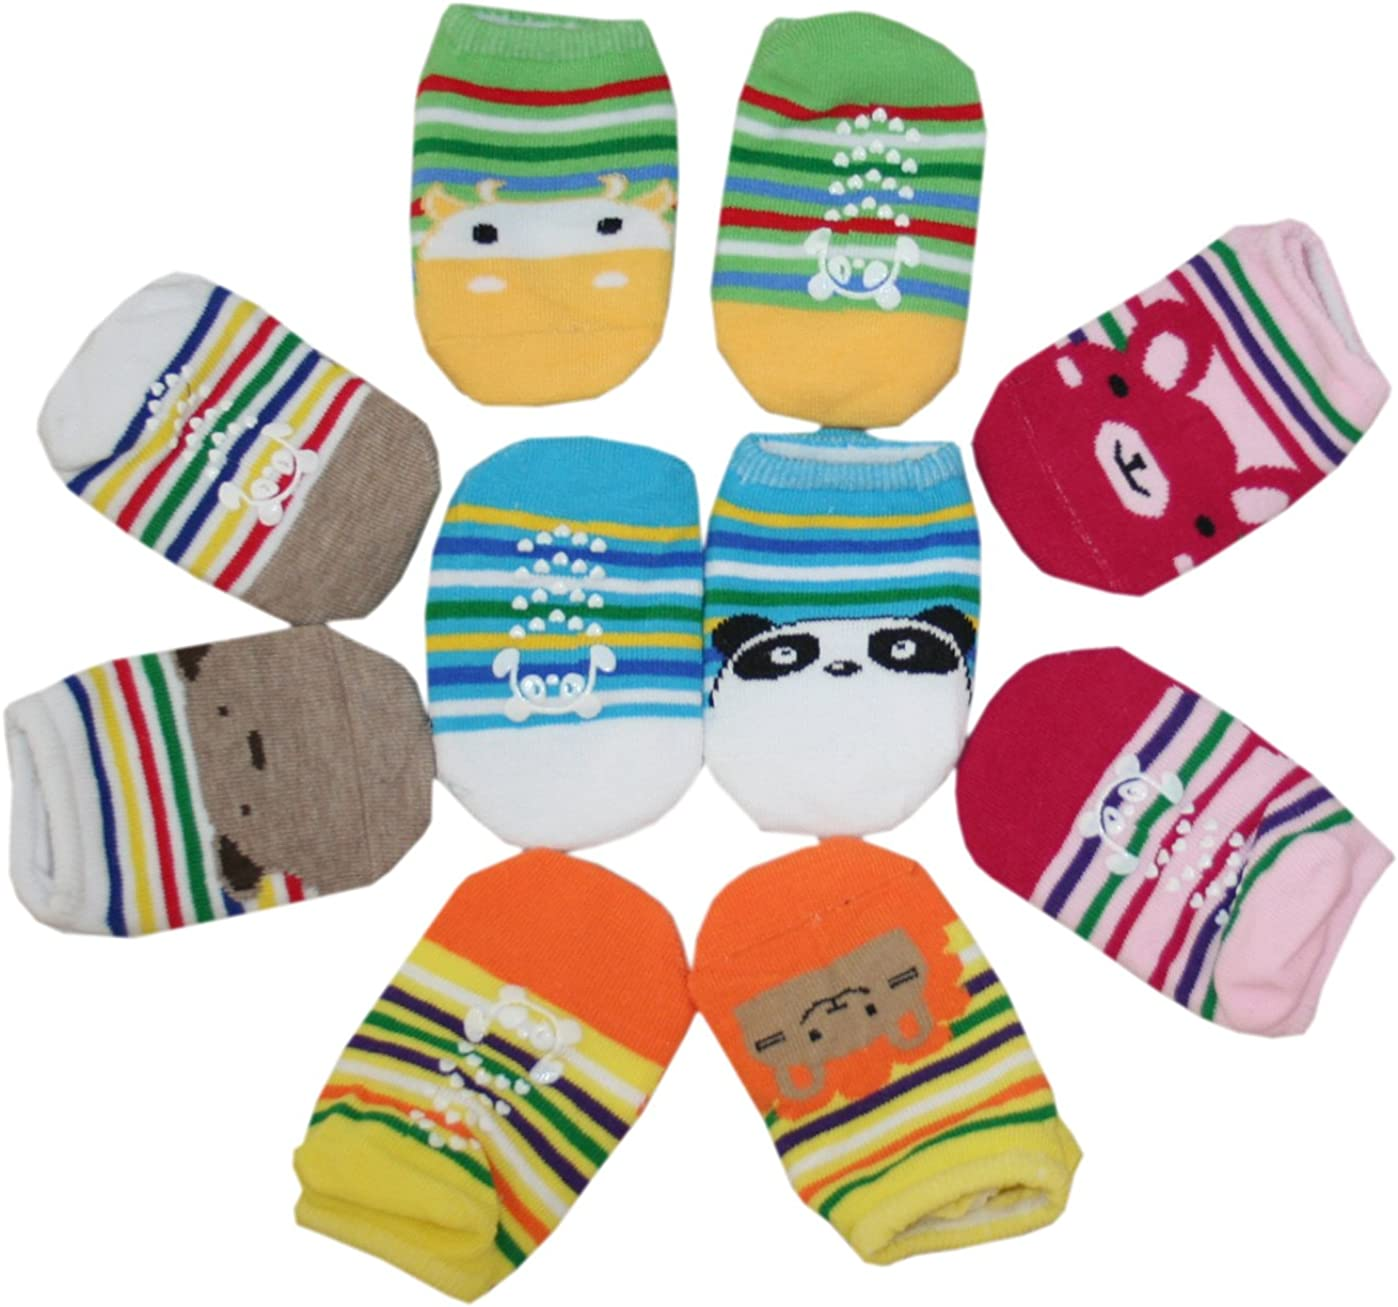 Riddles 10 Pairs Cute Baby Socks with Animal Pattern Unisex Crew Boat Anti-Slip Fit 6-18 mo